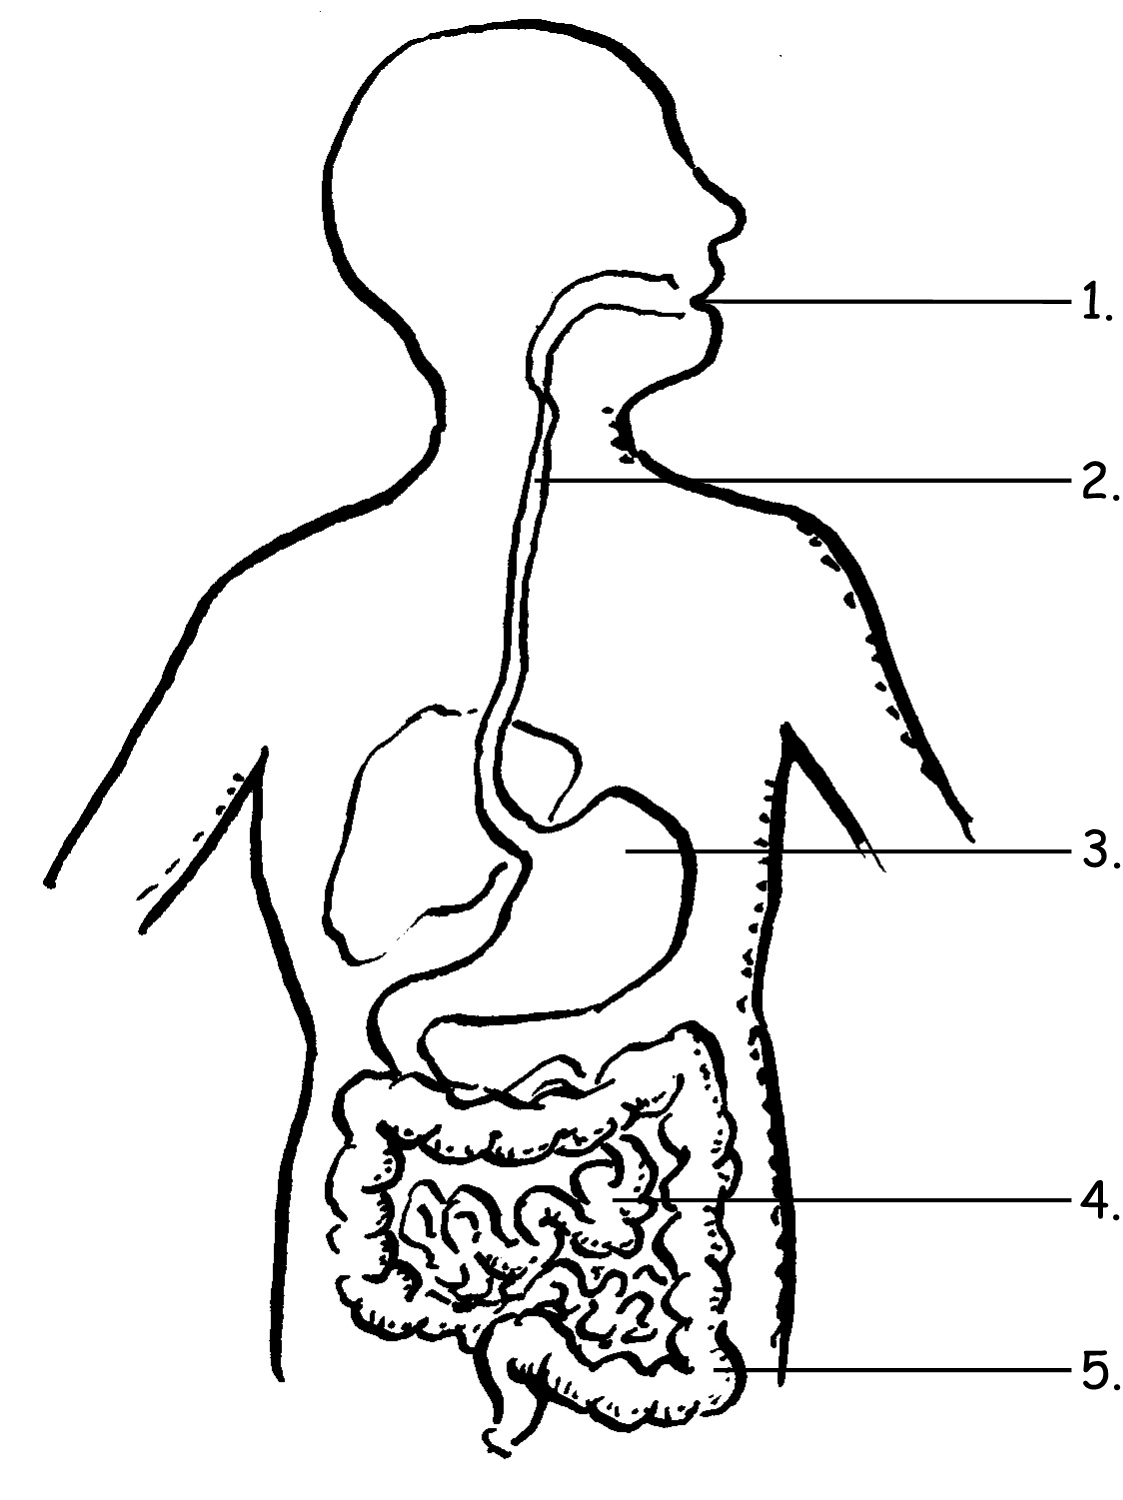 Digestive System Label